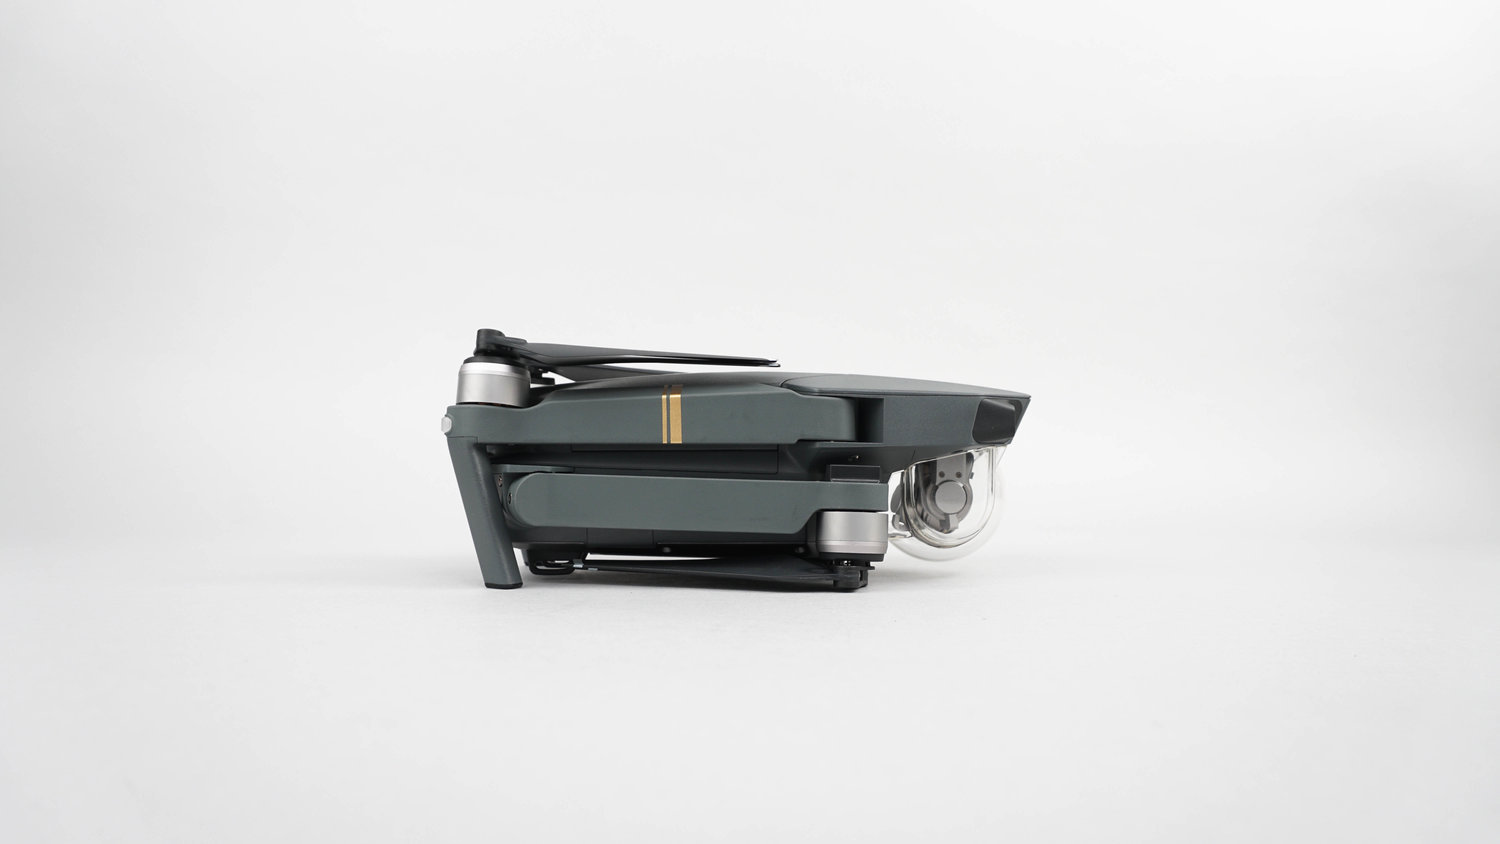 The Mavic can be folded down to fit in the palm of your hand